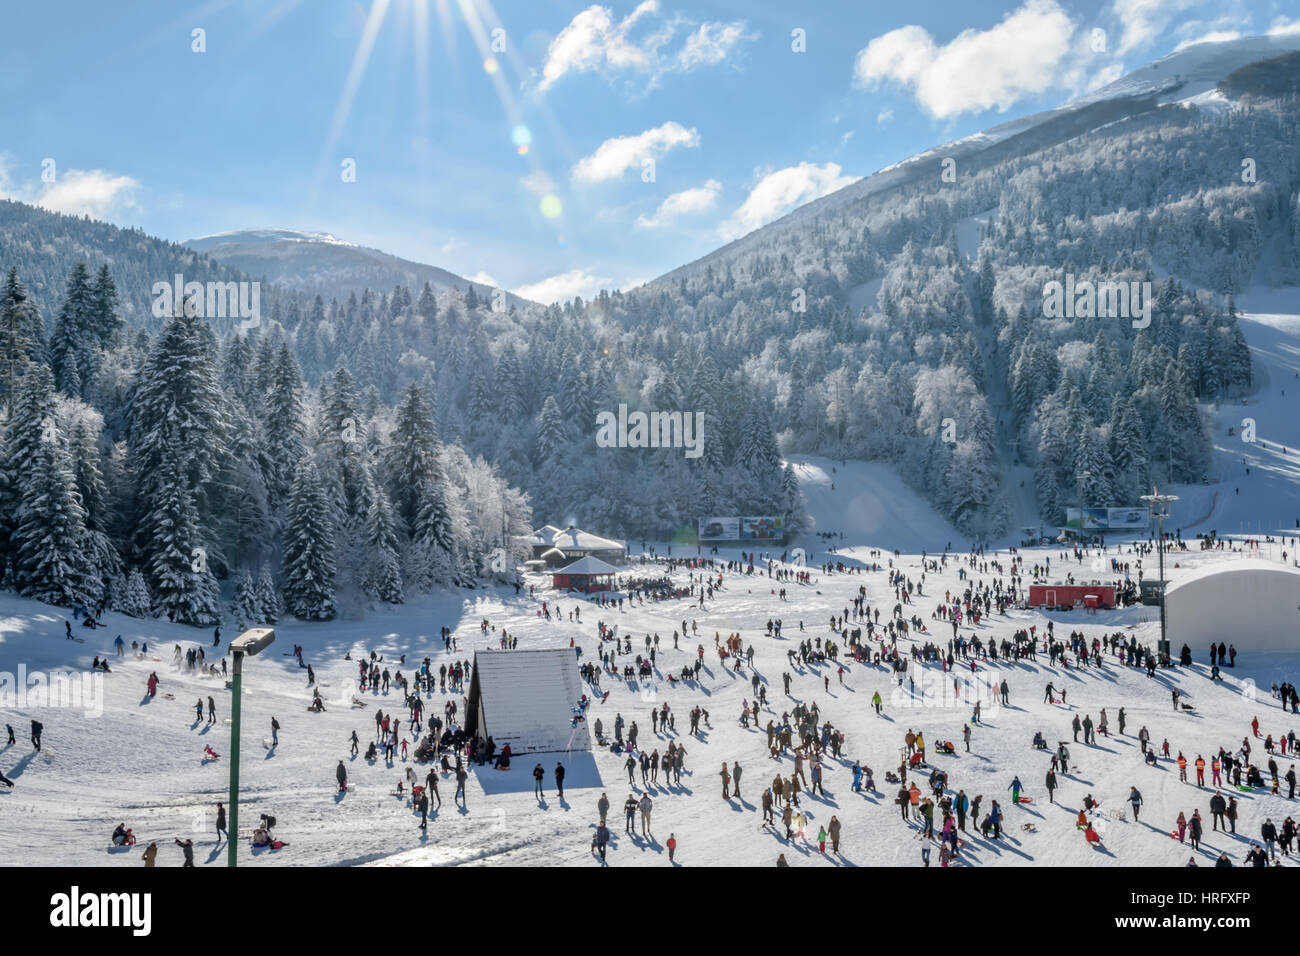 People on the snow - Stock Image